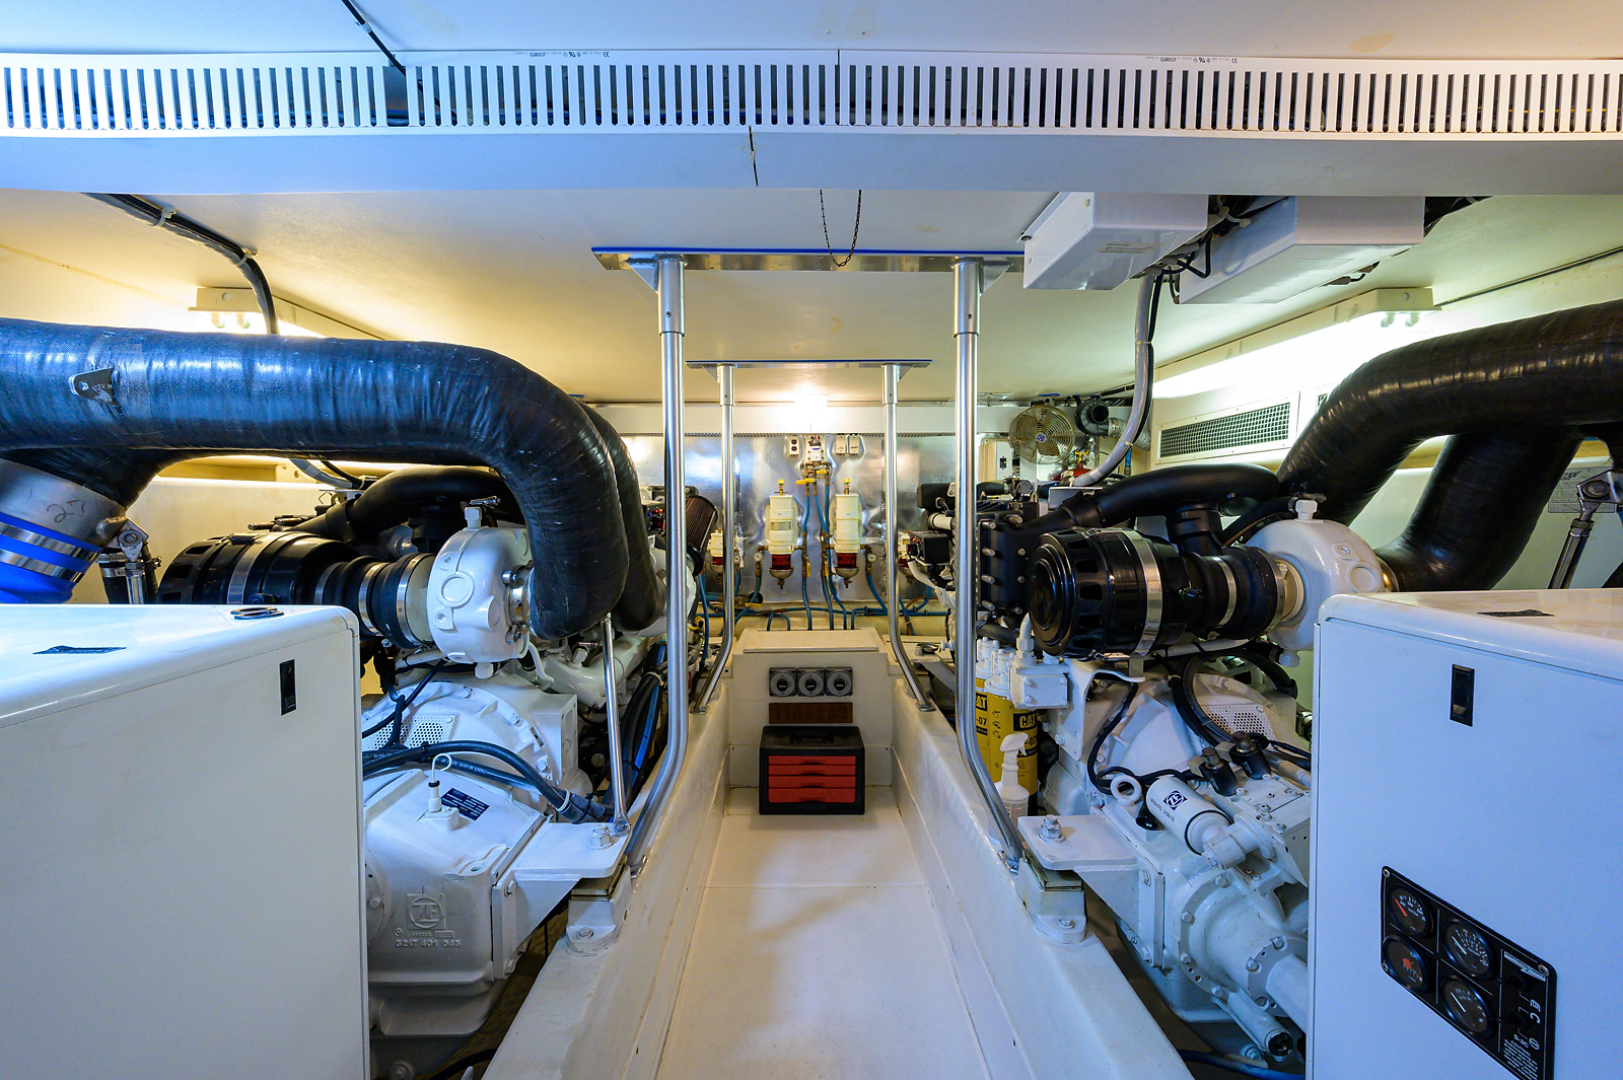 Ocean Yachts-Odyssey 2005-MISS JAN Palm Beach Gardens-Florida-United States-Engine Room-1387048 | Thumbnail